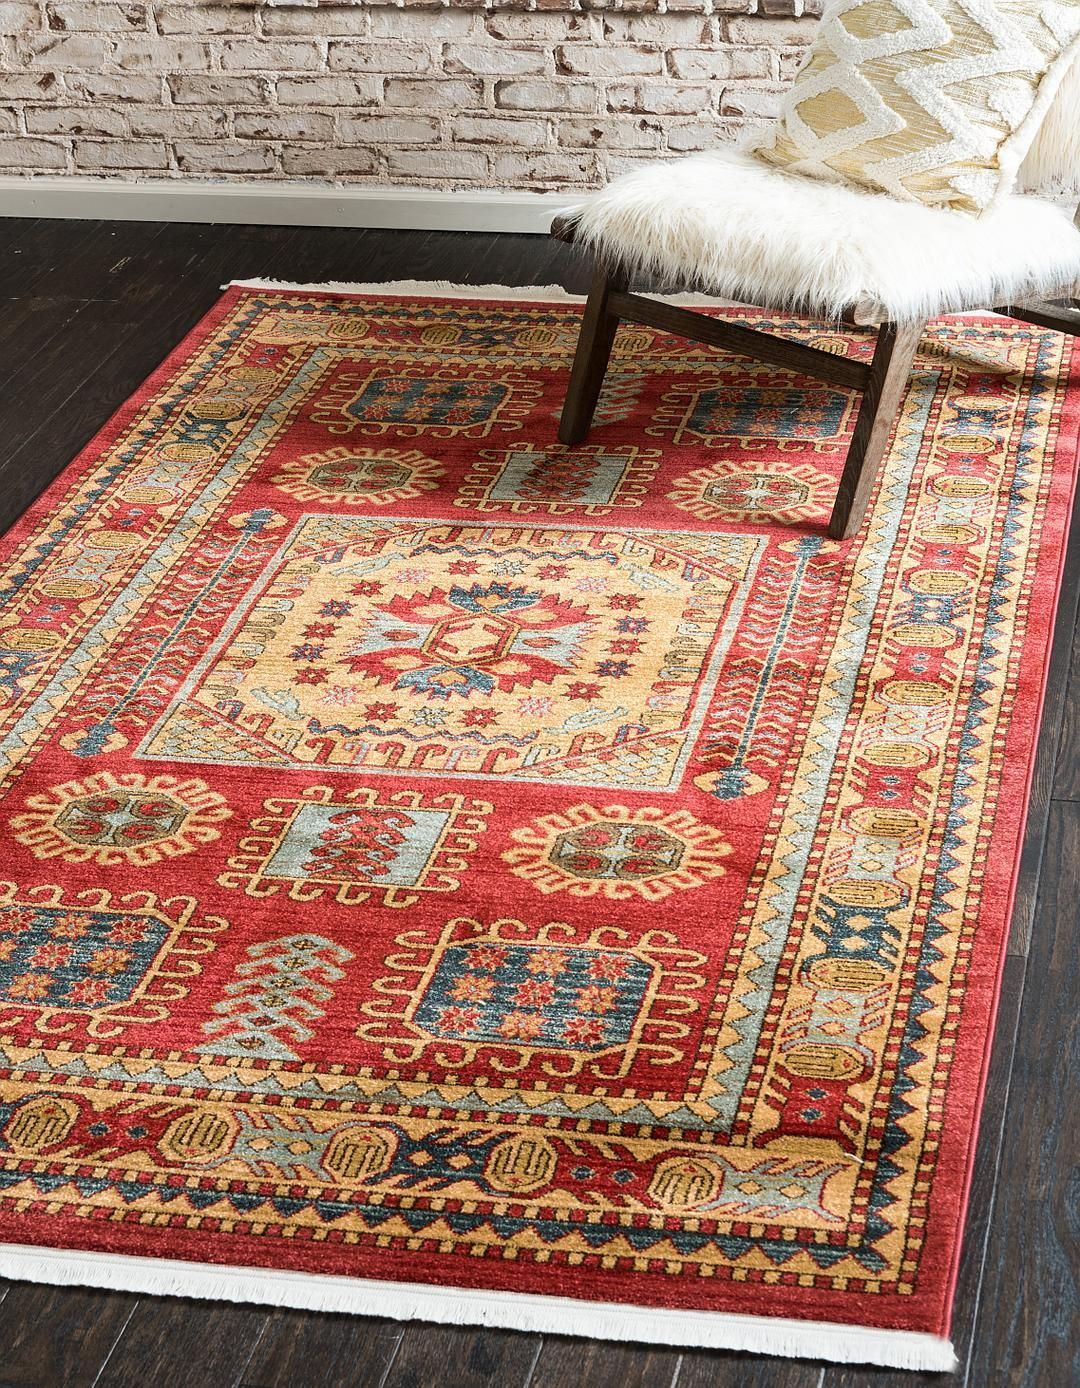 Red 3 3 X 5 3 Serapi Rug Area Rugs Esalerugs Area Rugs Affordable Persian Rugs Unique Loom